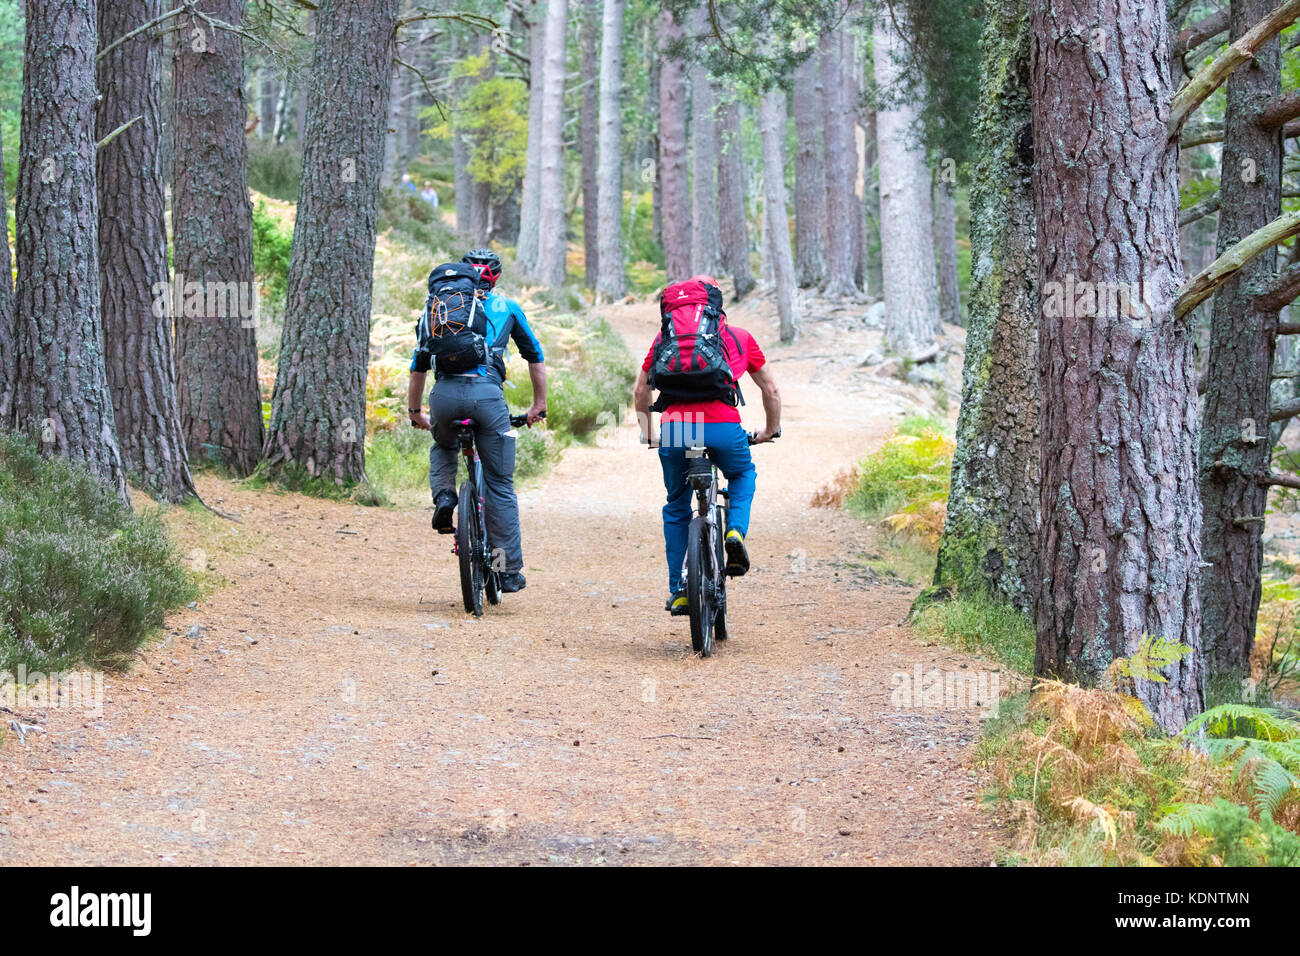 Two mountain bikers on bikes heading towards the Lairig Ghru pass from the Rothiemurchus Estate as they pass through - Stock Image